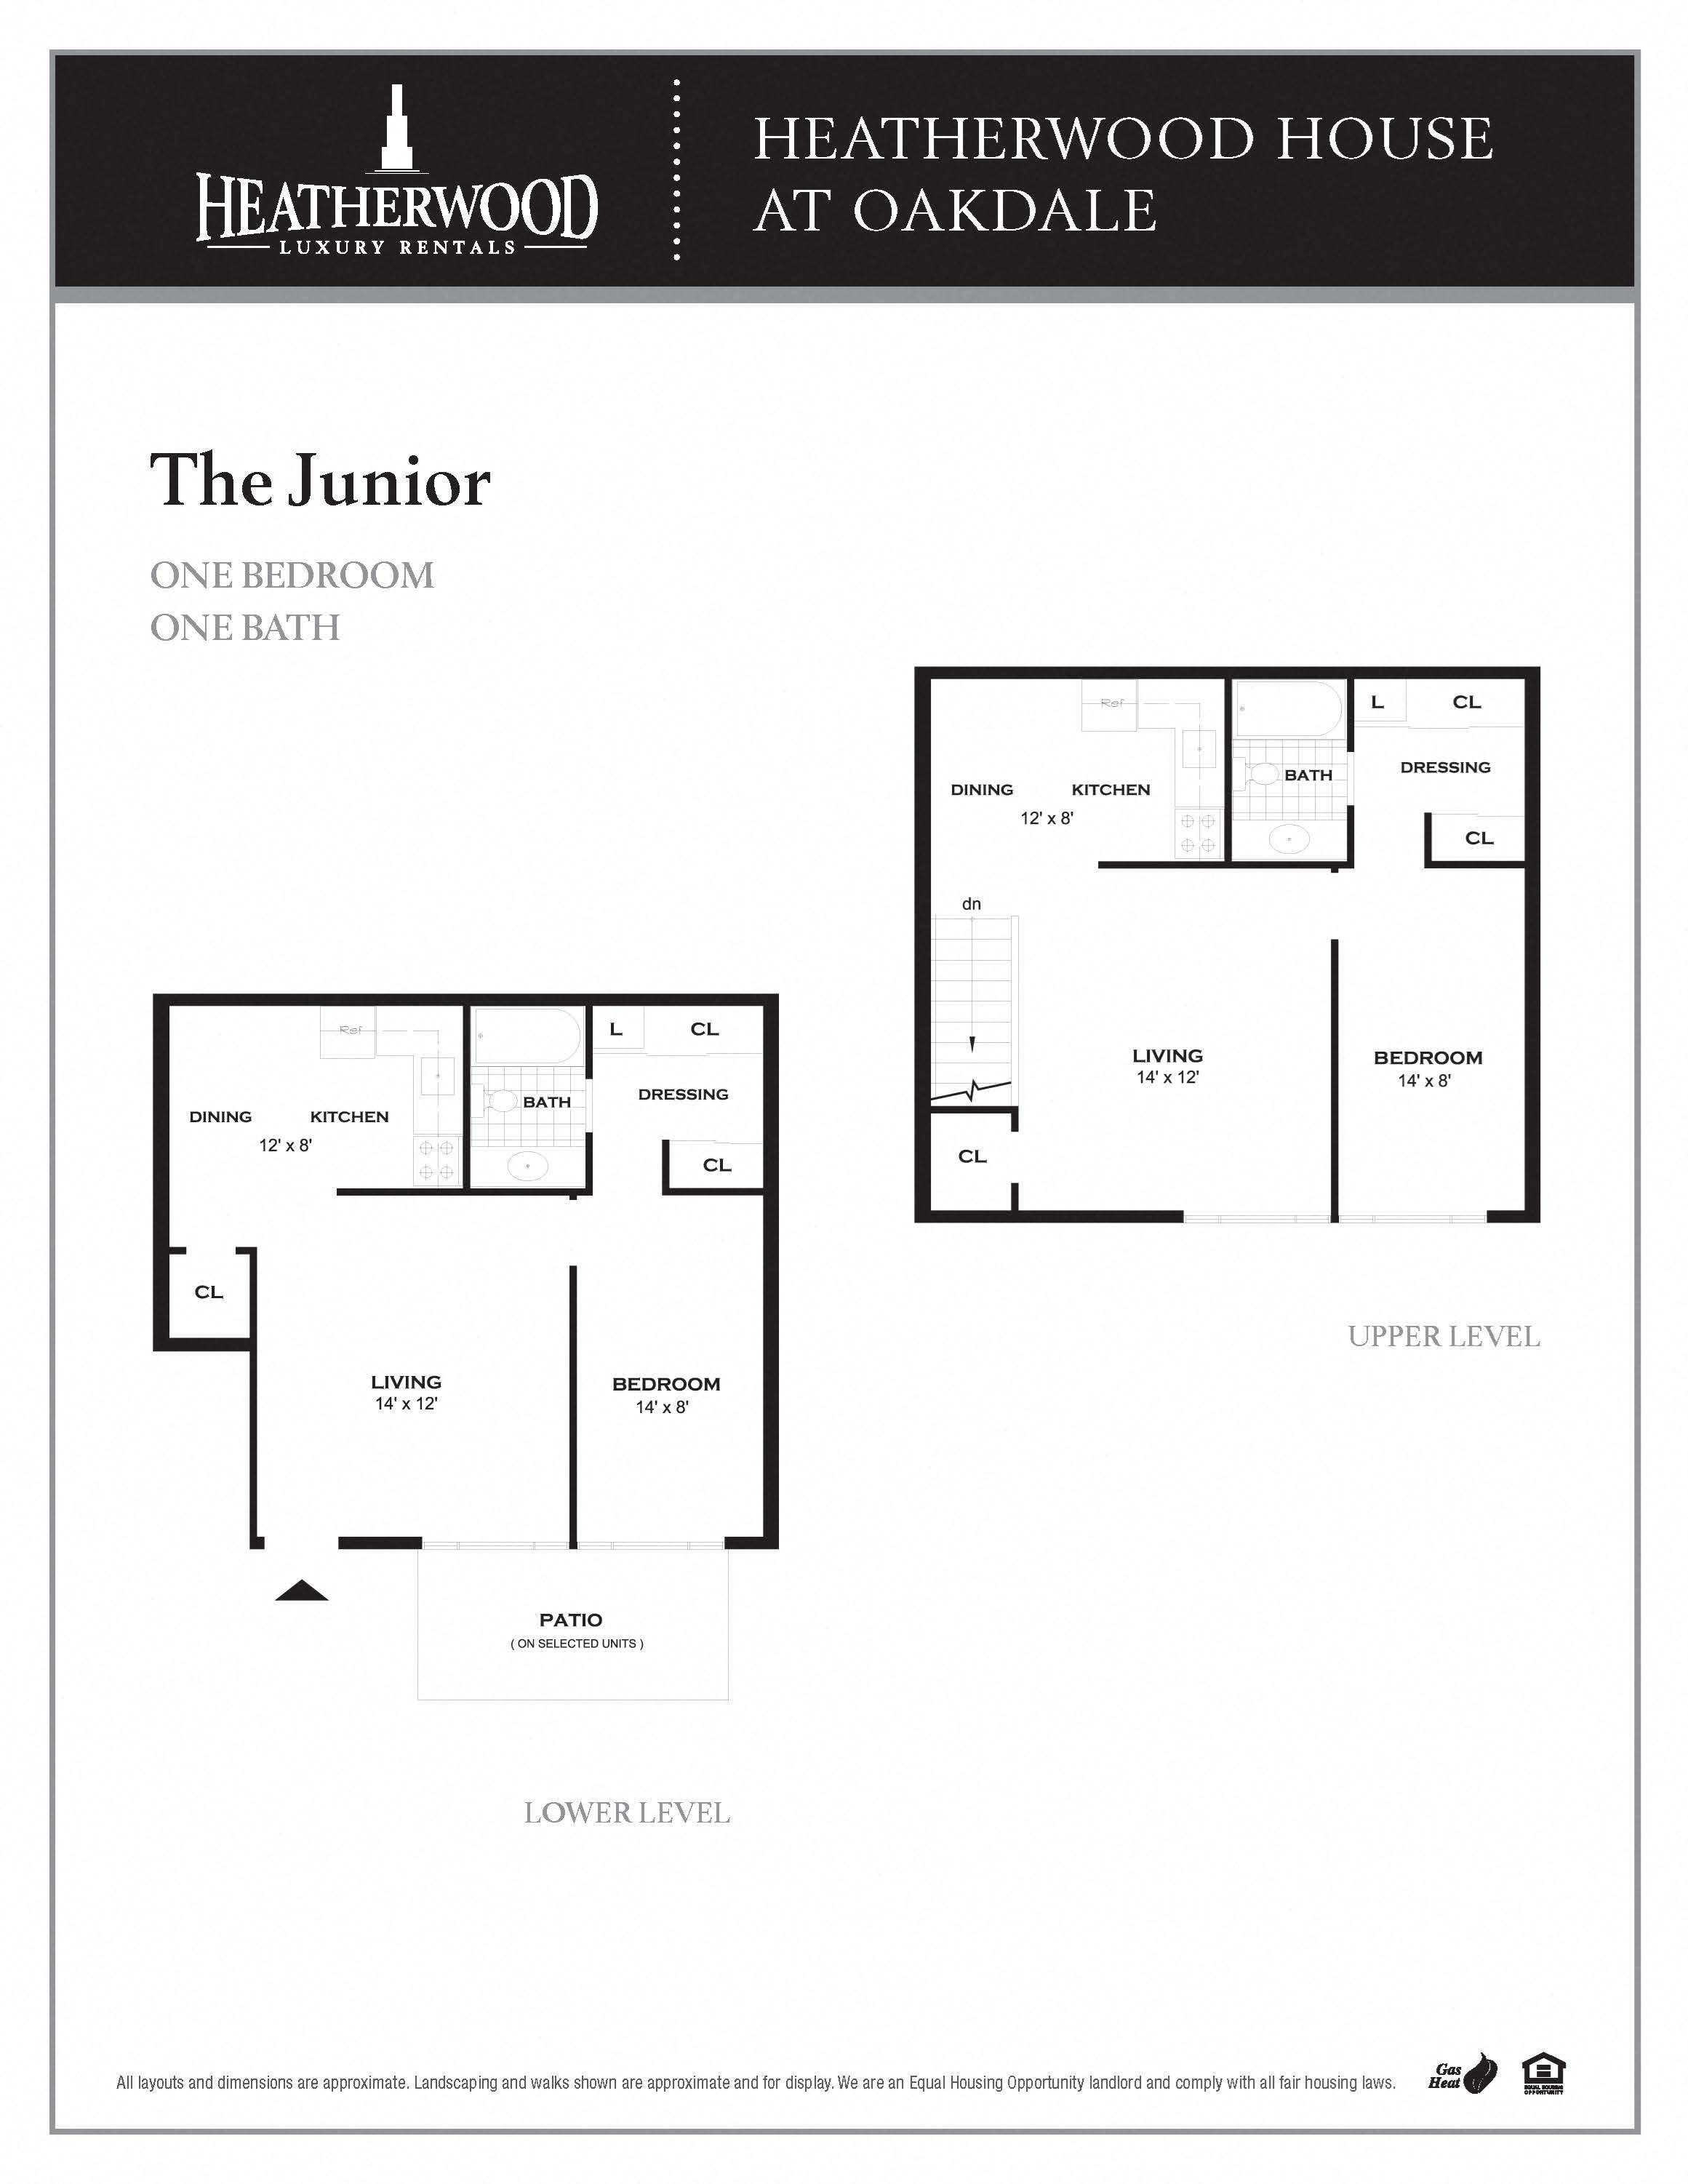 The Junior Floorplan at HH Oakdale